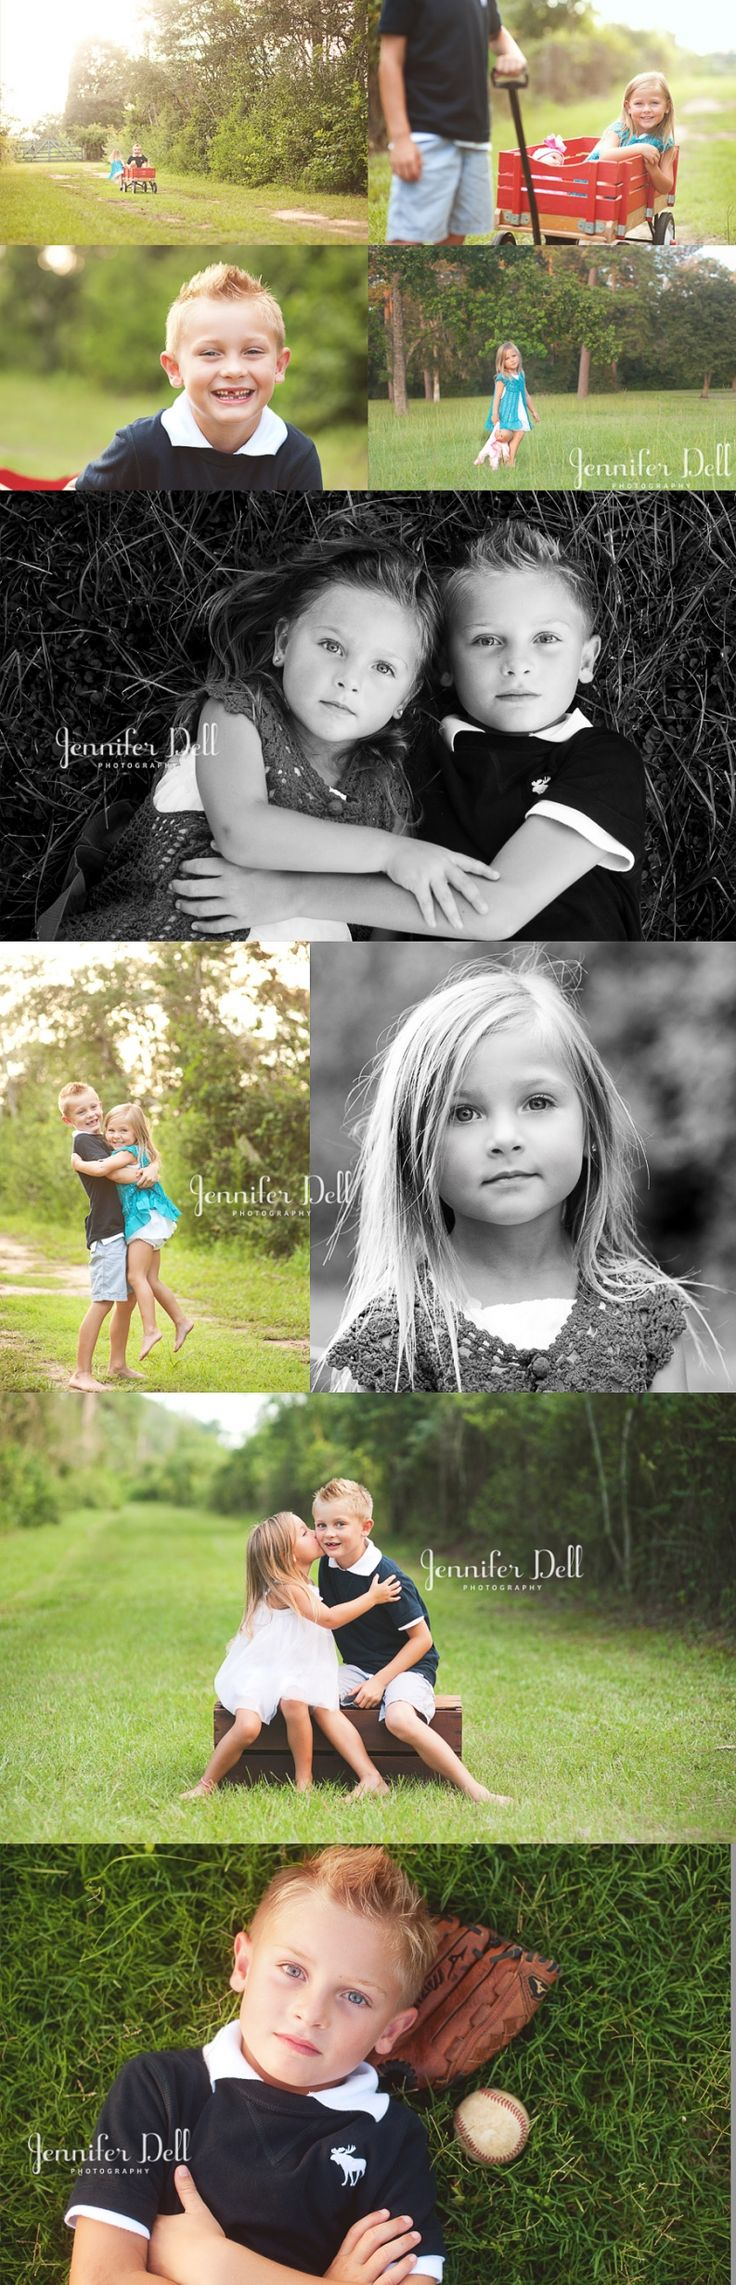 Great sibling photo ideas - I would like a portrait picture of each child individually and maybe a few together.... PLEASE :)